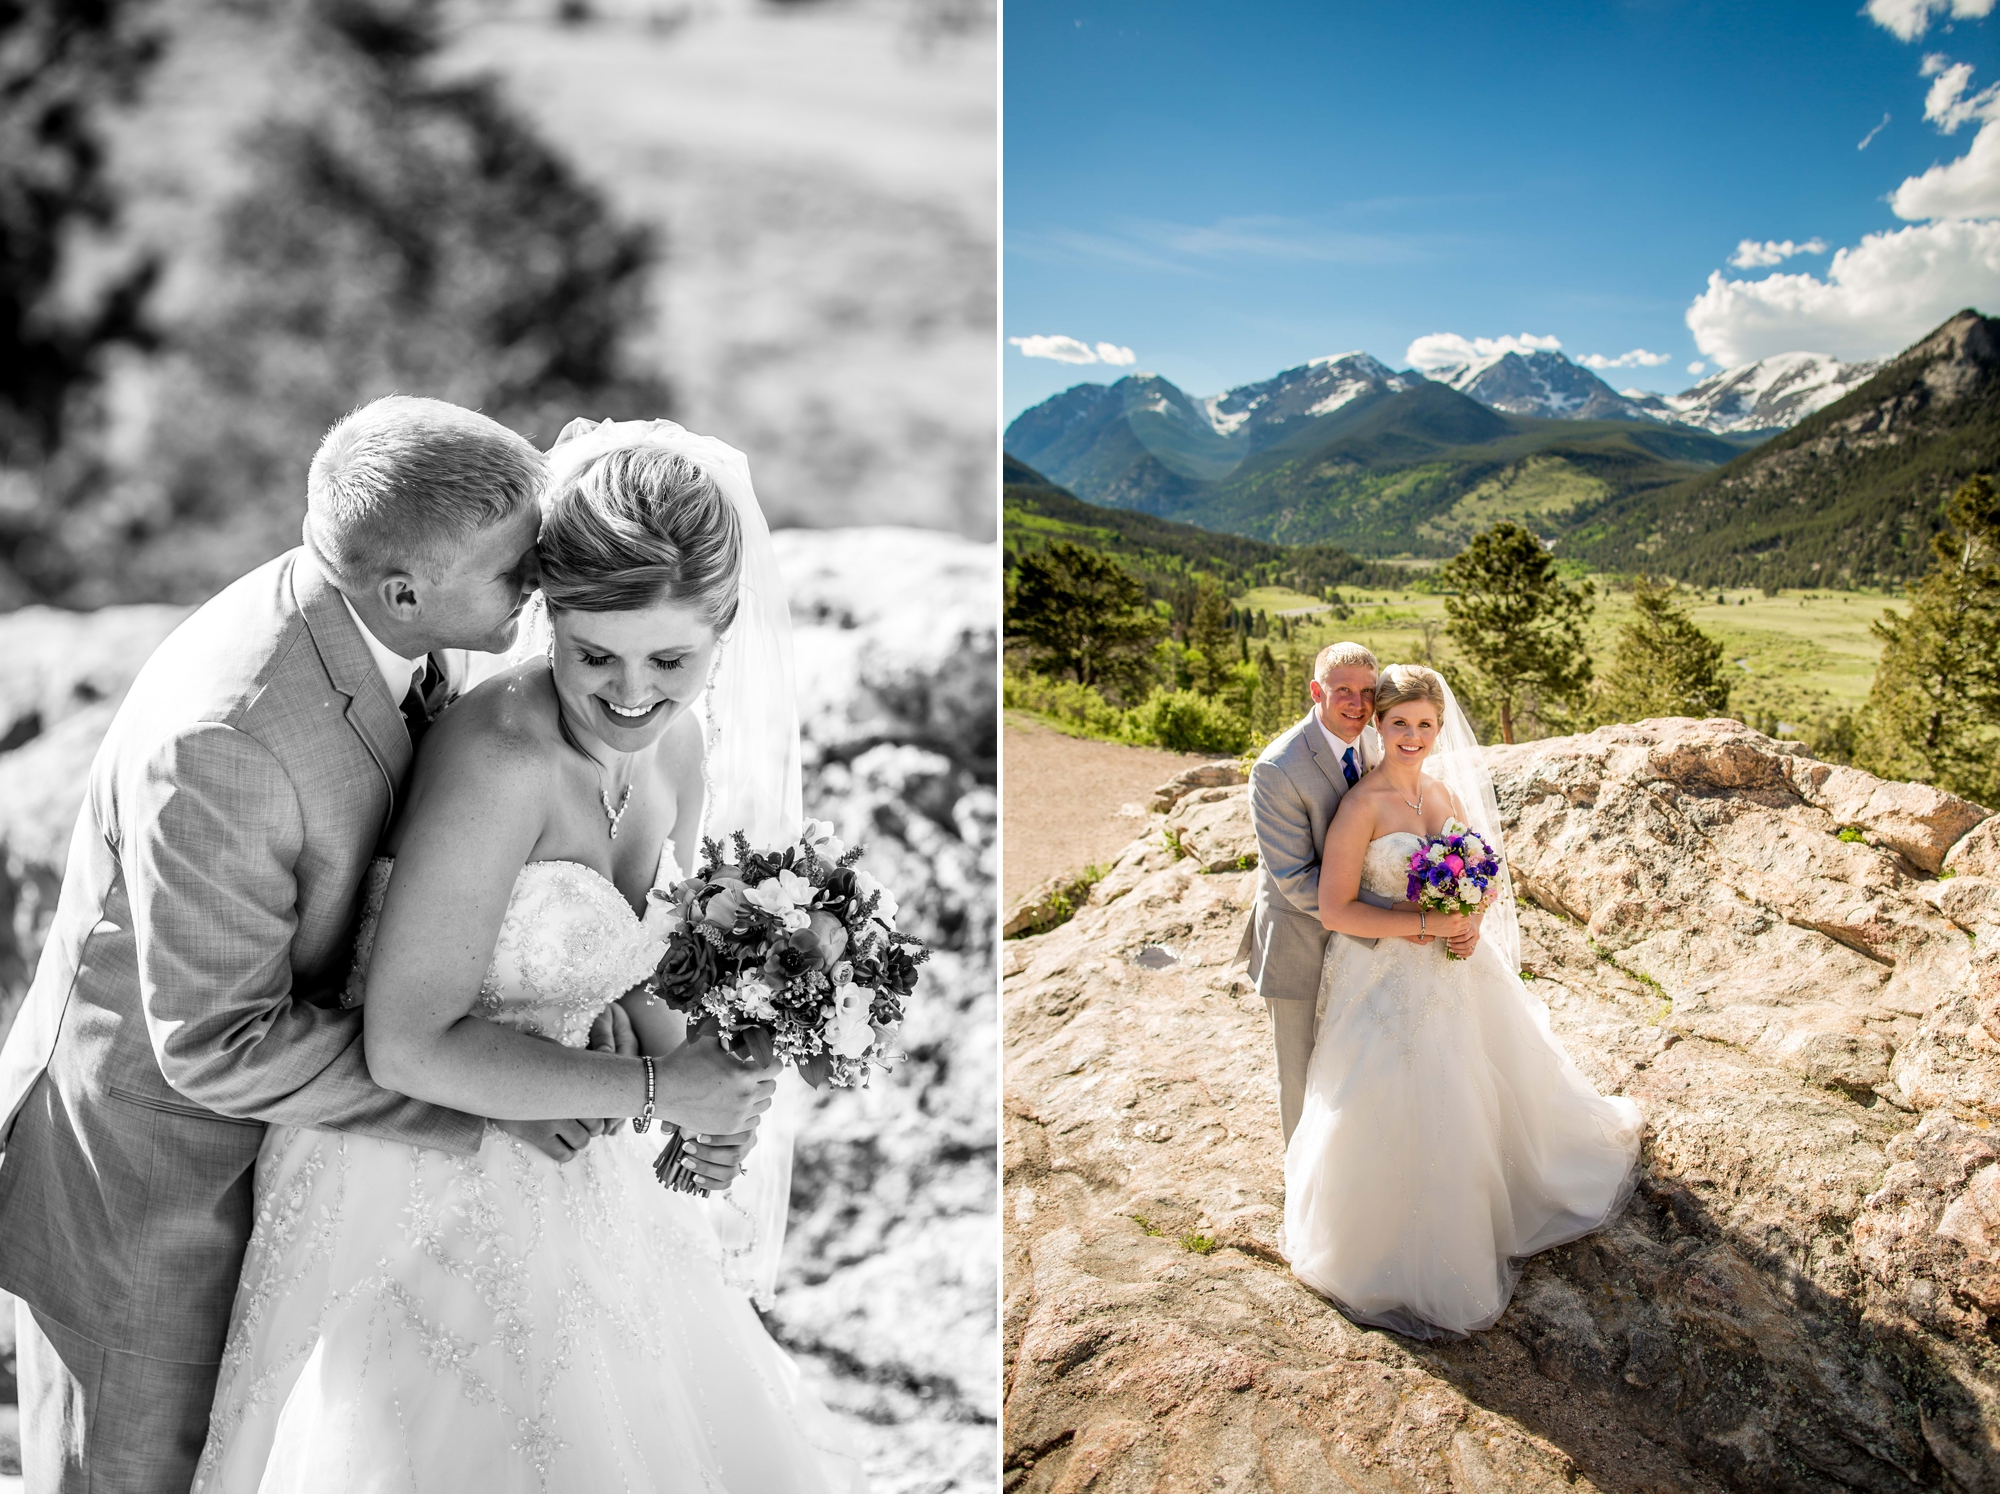 Rocky Mountain National Park Weddings by Aldabella Photography